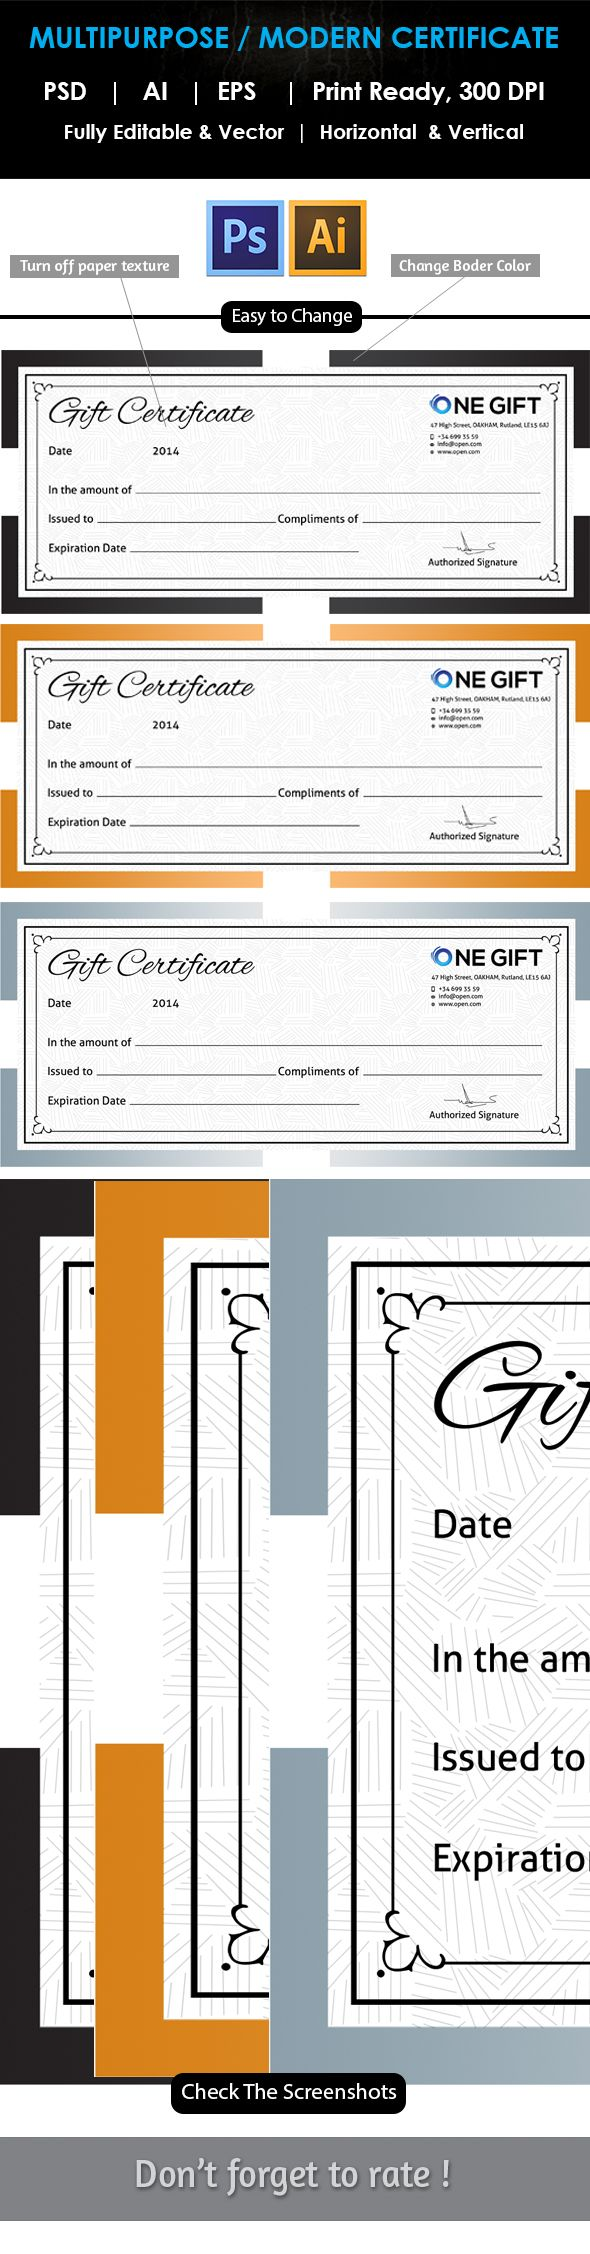 23 best certificate images on pinterest certificate work on and fully layered psd file fully vector files easy to change any colour certificate templatesgift yelopaper Images